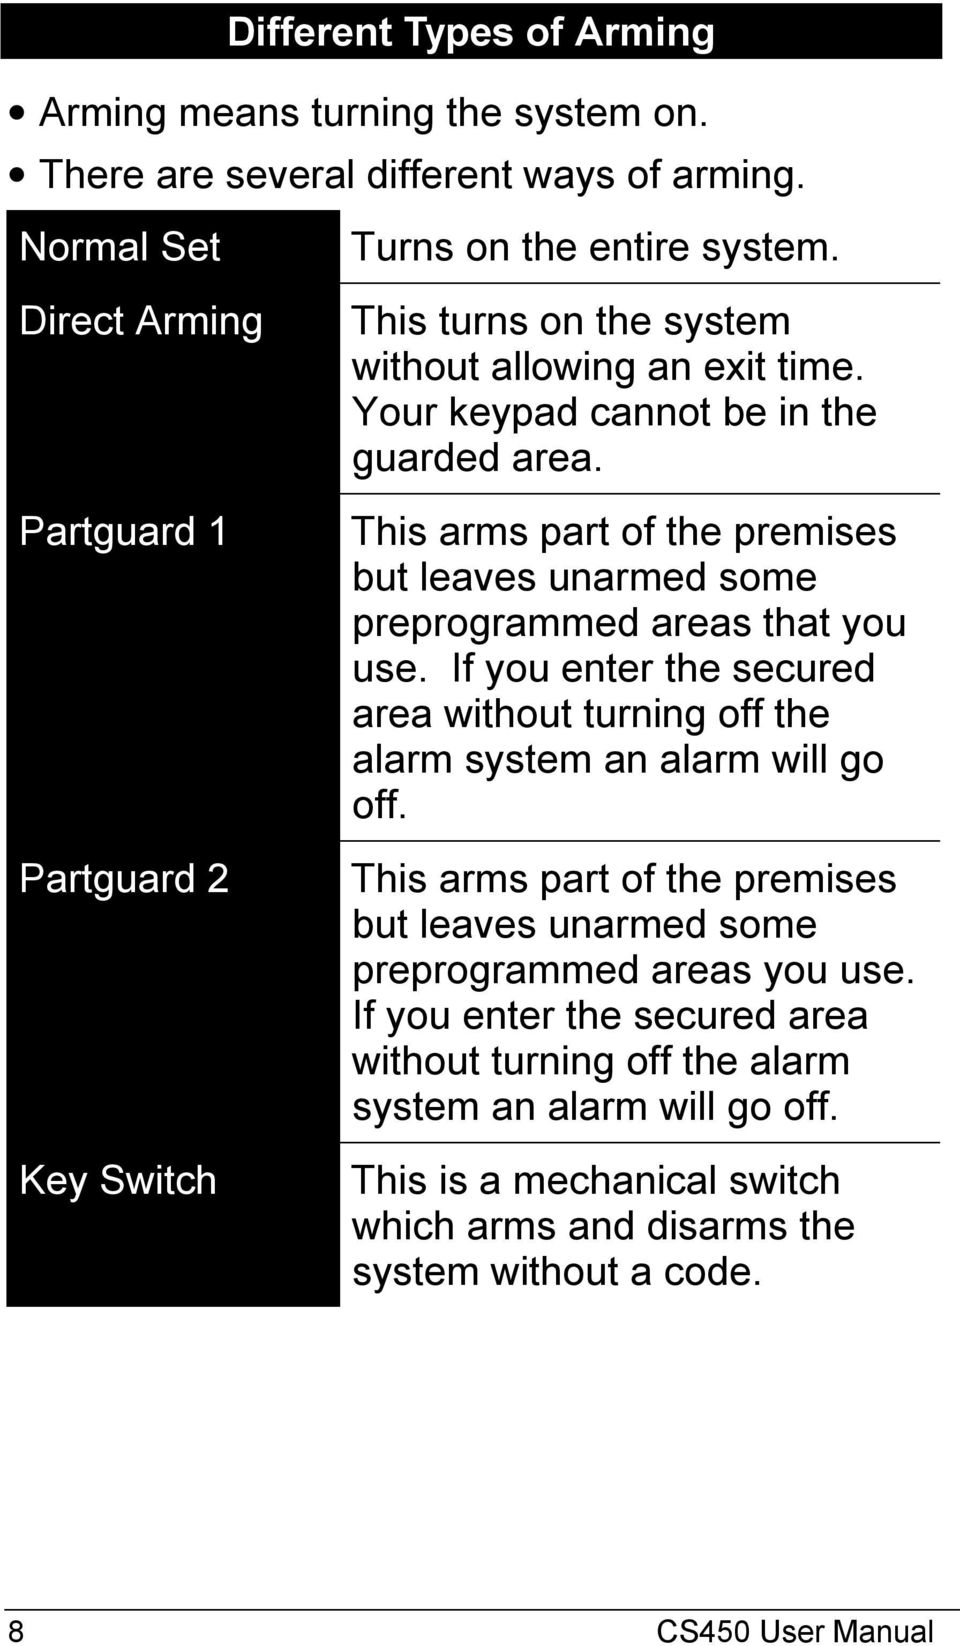 This arms part of the premises but leaves unarmed some preprogrammed areas that you use. If you enter the secured area without turning off the alarm system an alarm will go off.